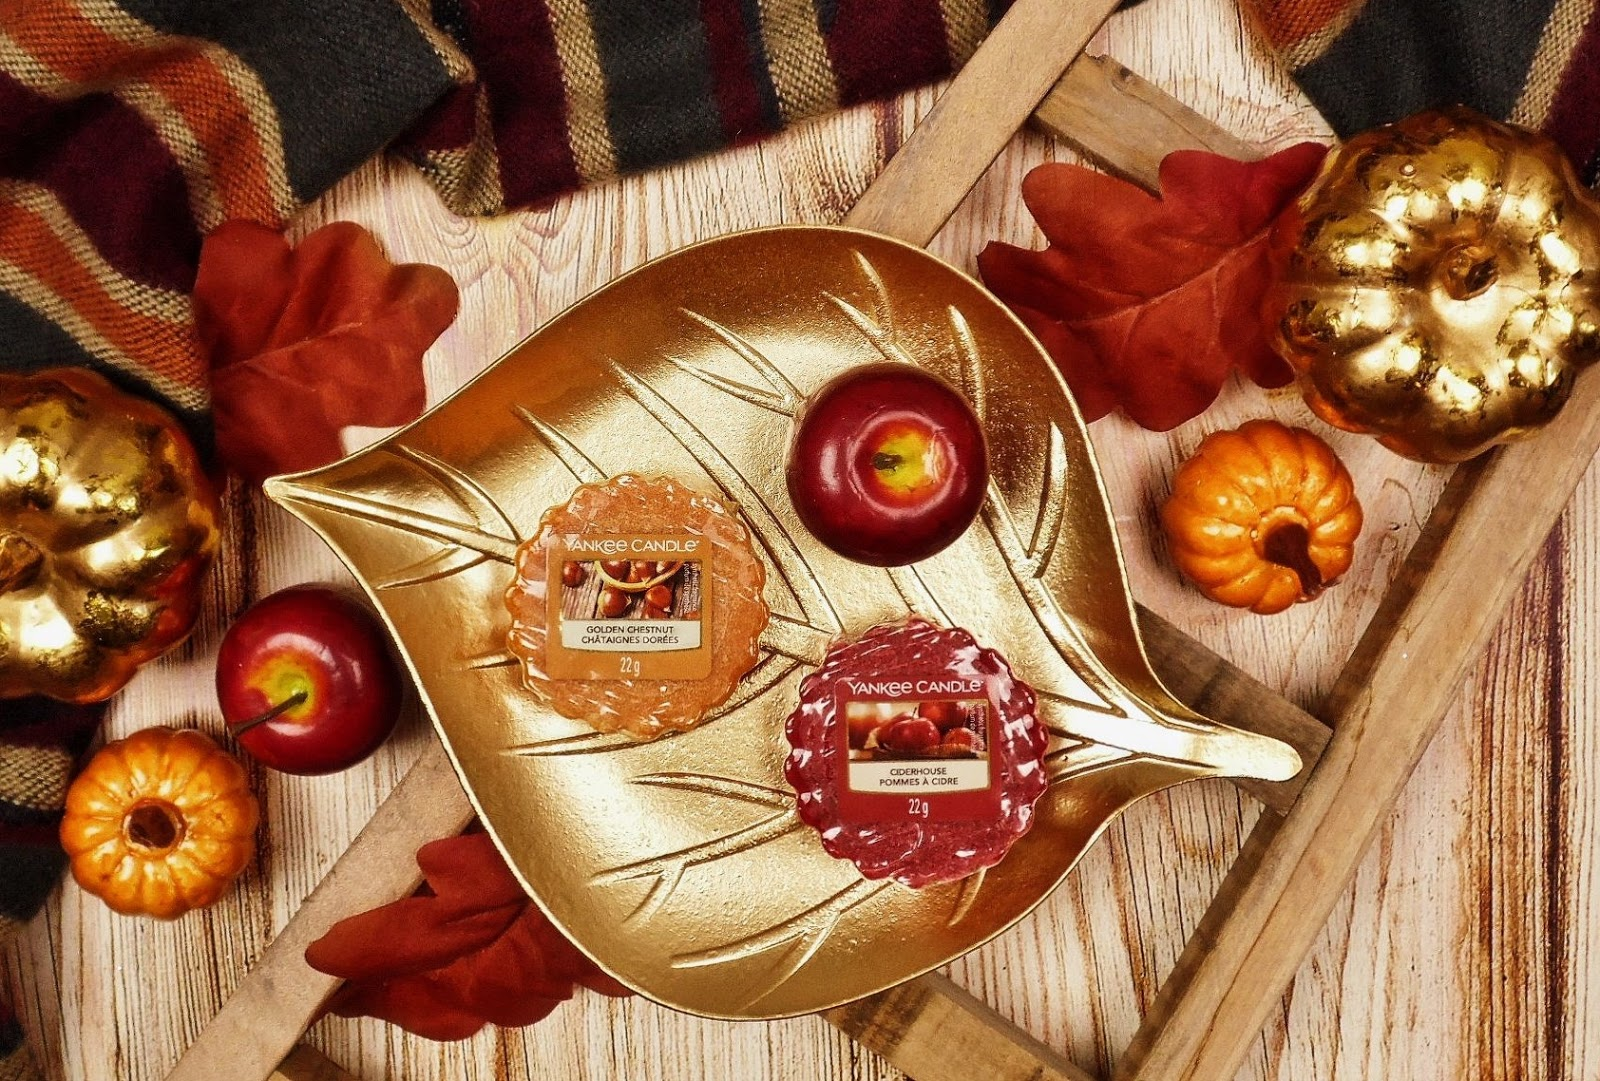 Spacer po jesiennym targu - Golden Chestnut i Ciderhouse Yankee Candle